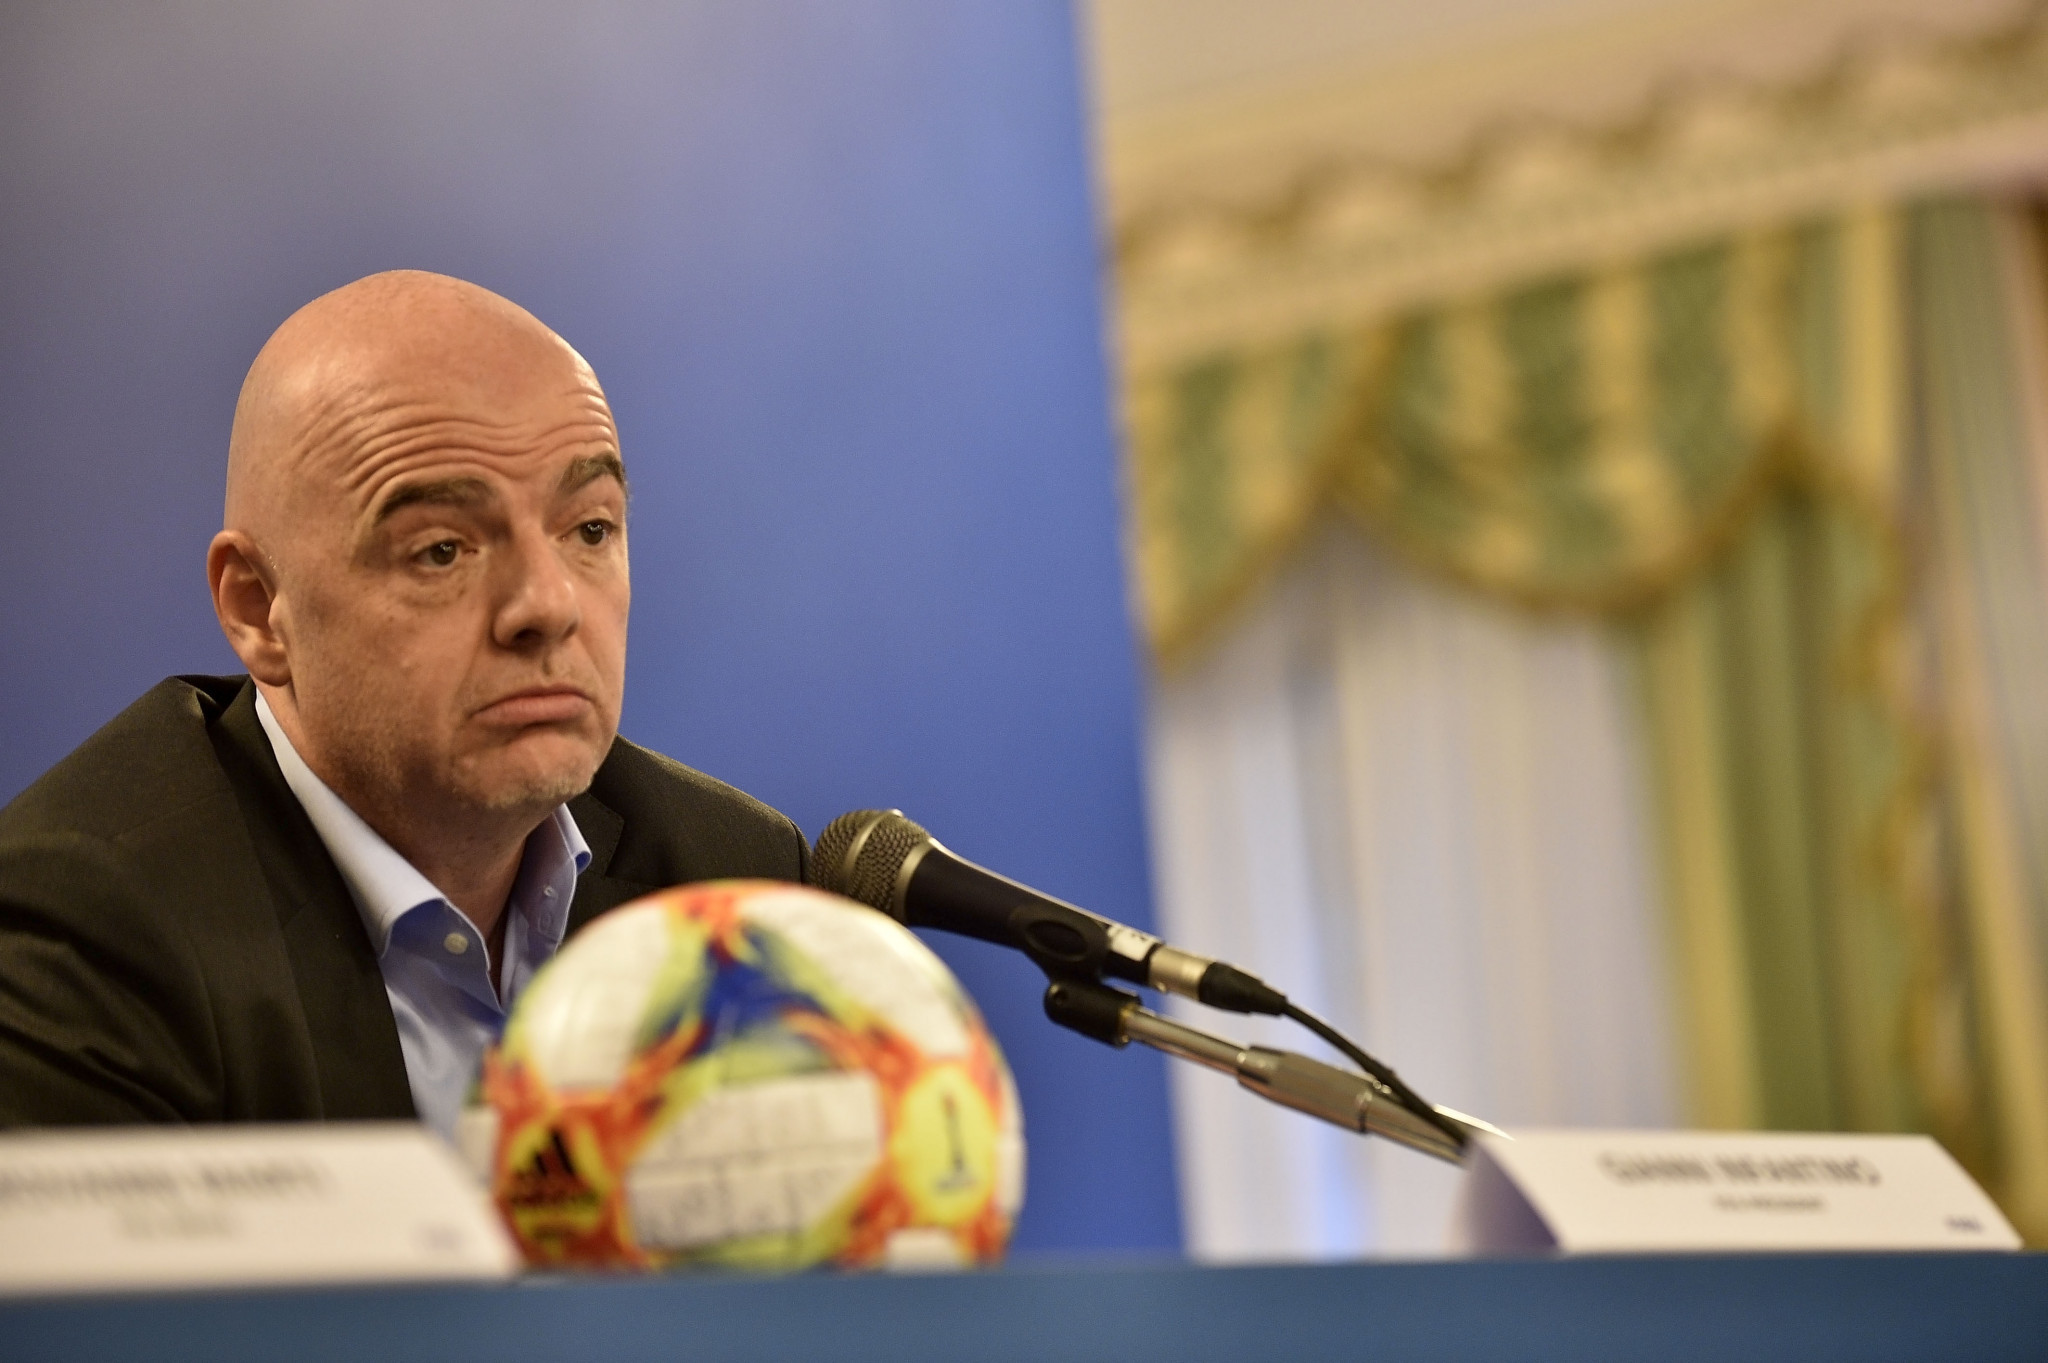 FIFA President Gianni Infantino has been accused of influencing the Ethics Commission, allegations which he denies ©Getty Images